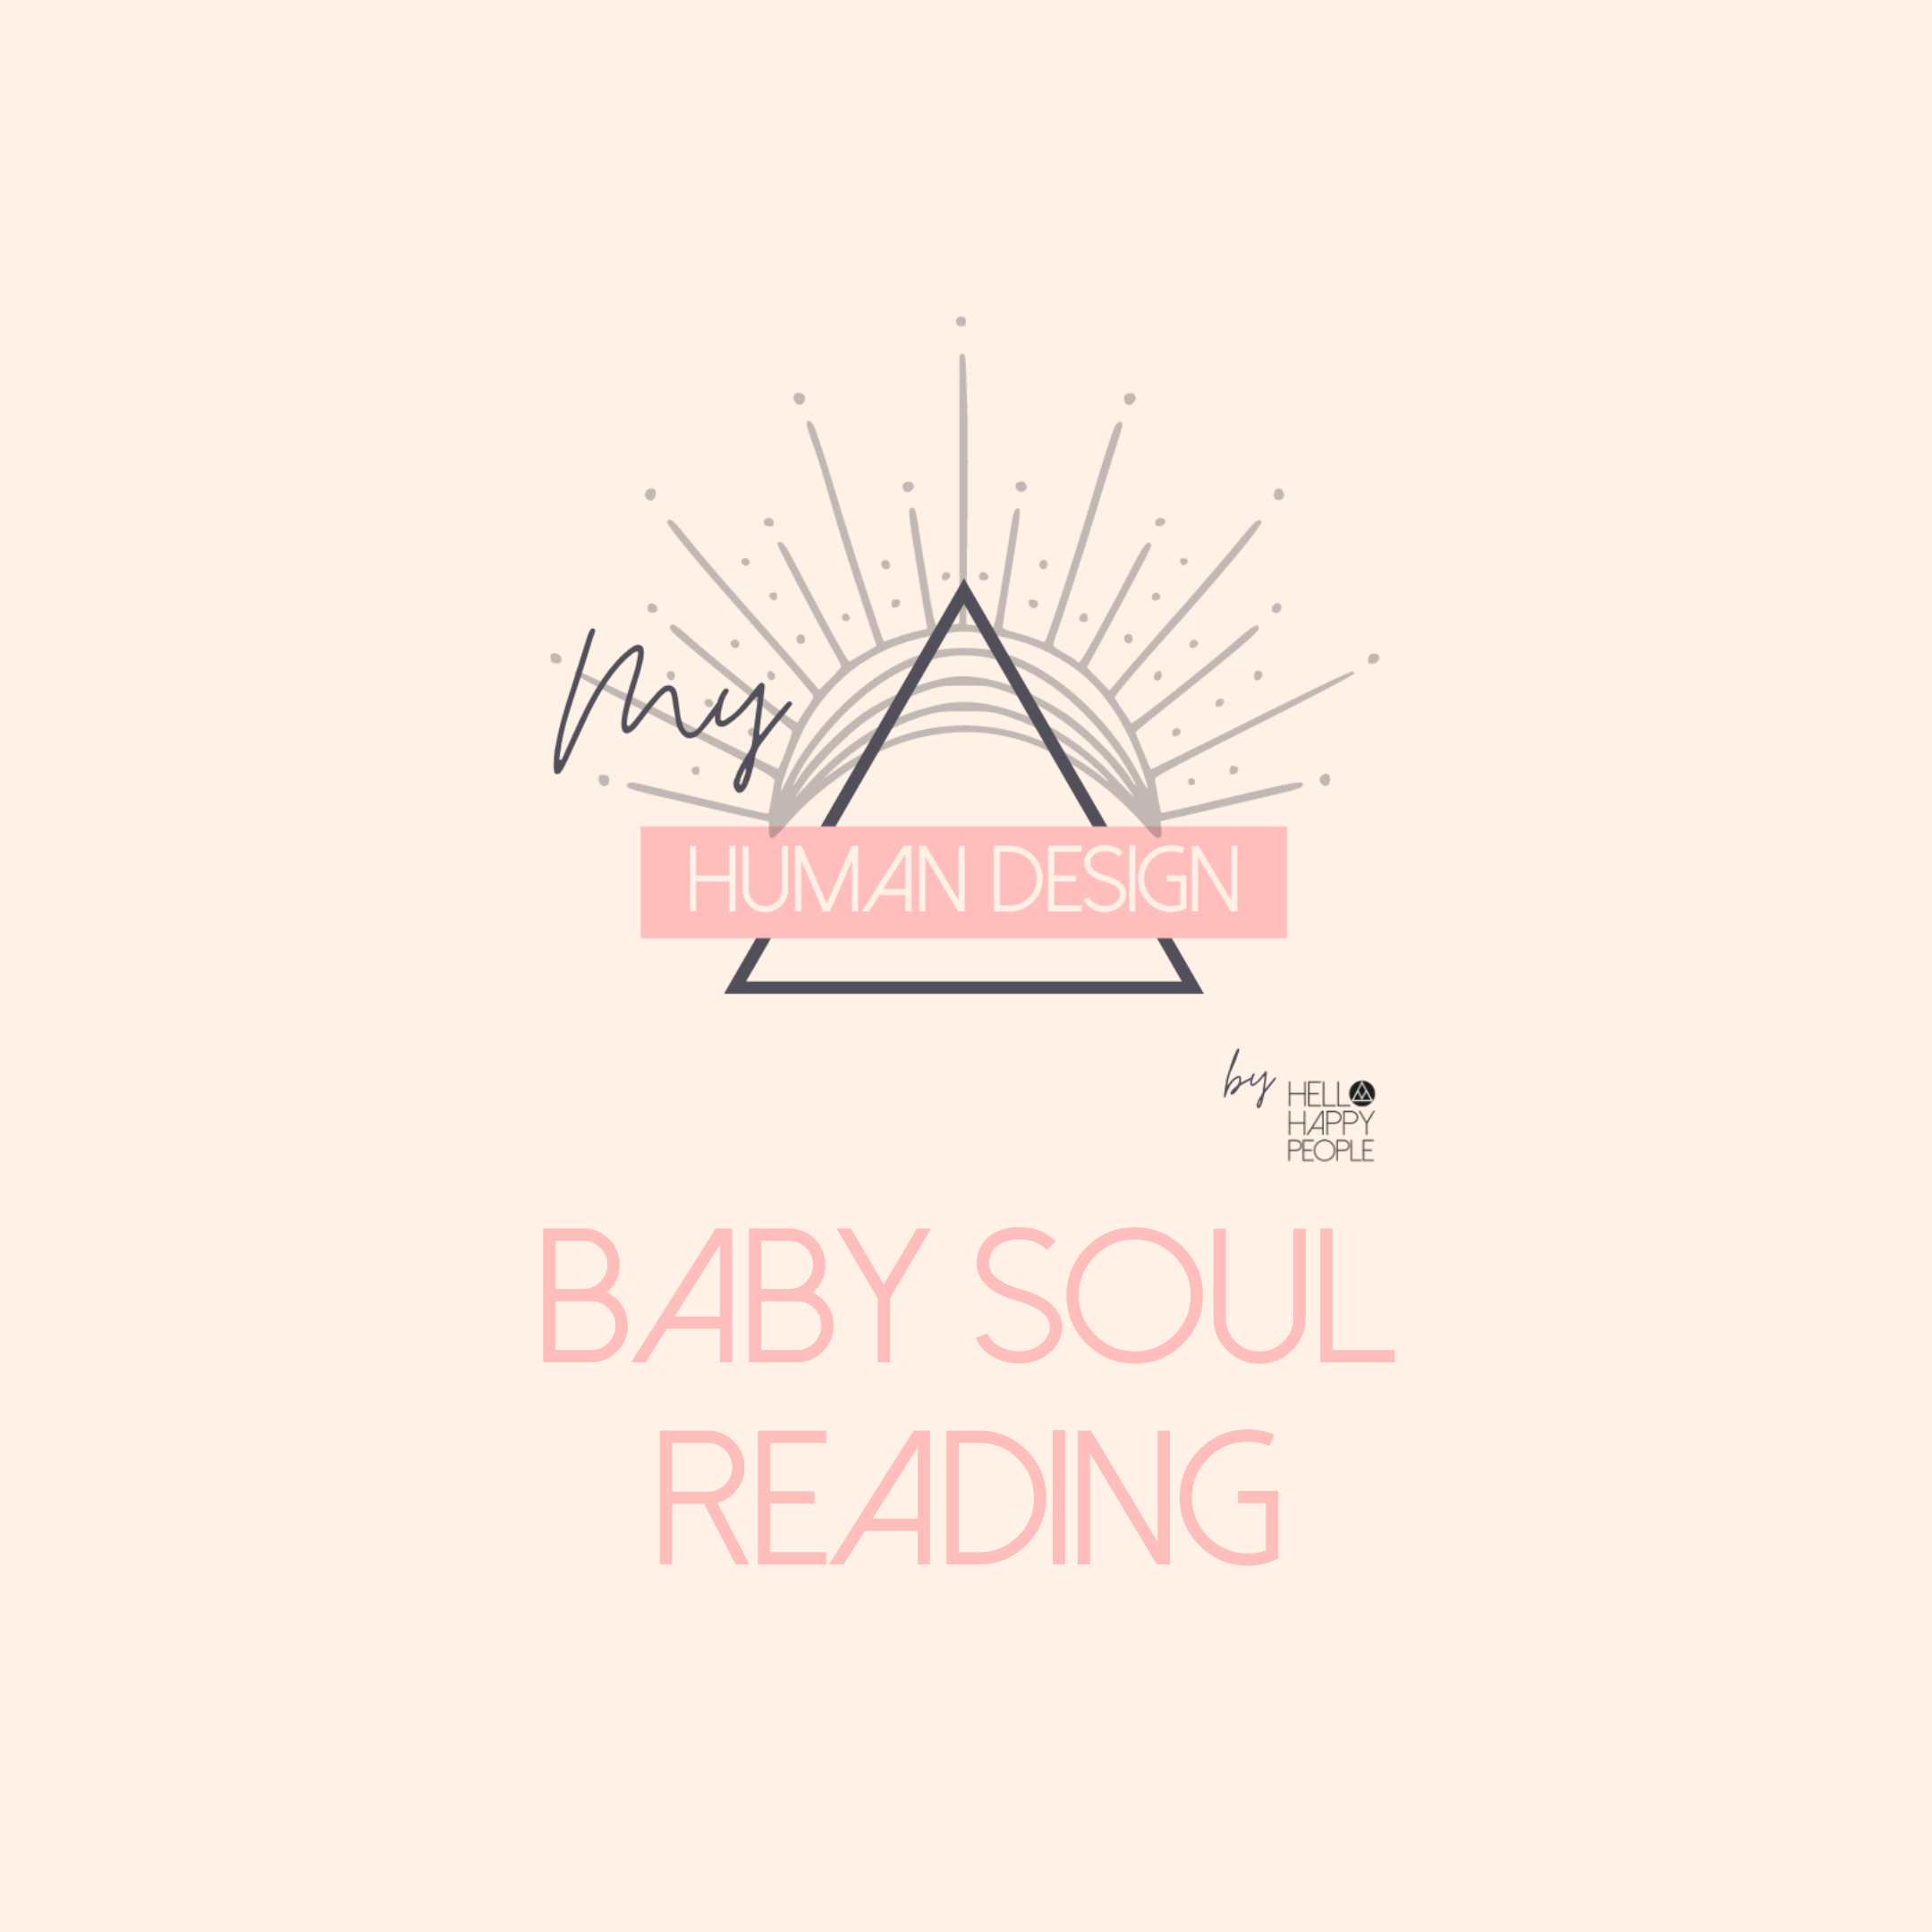 BABY SOUL READING